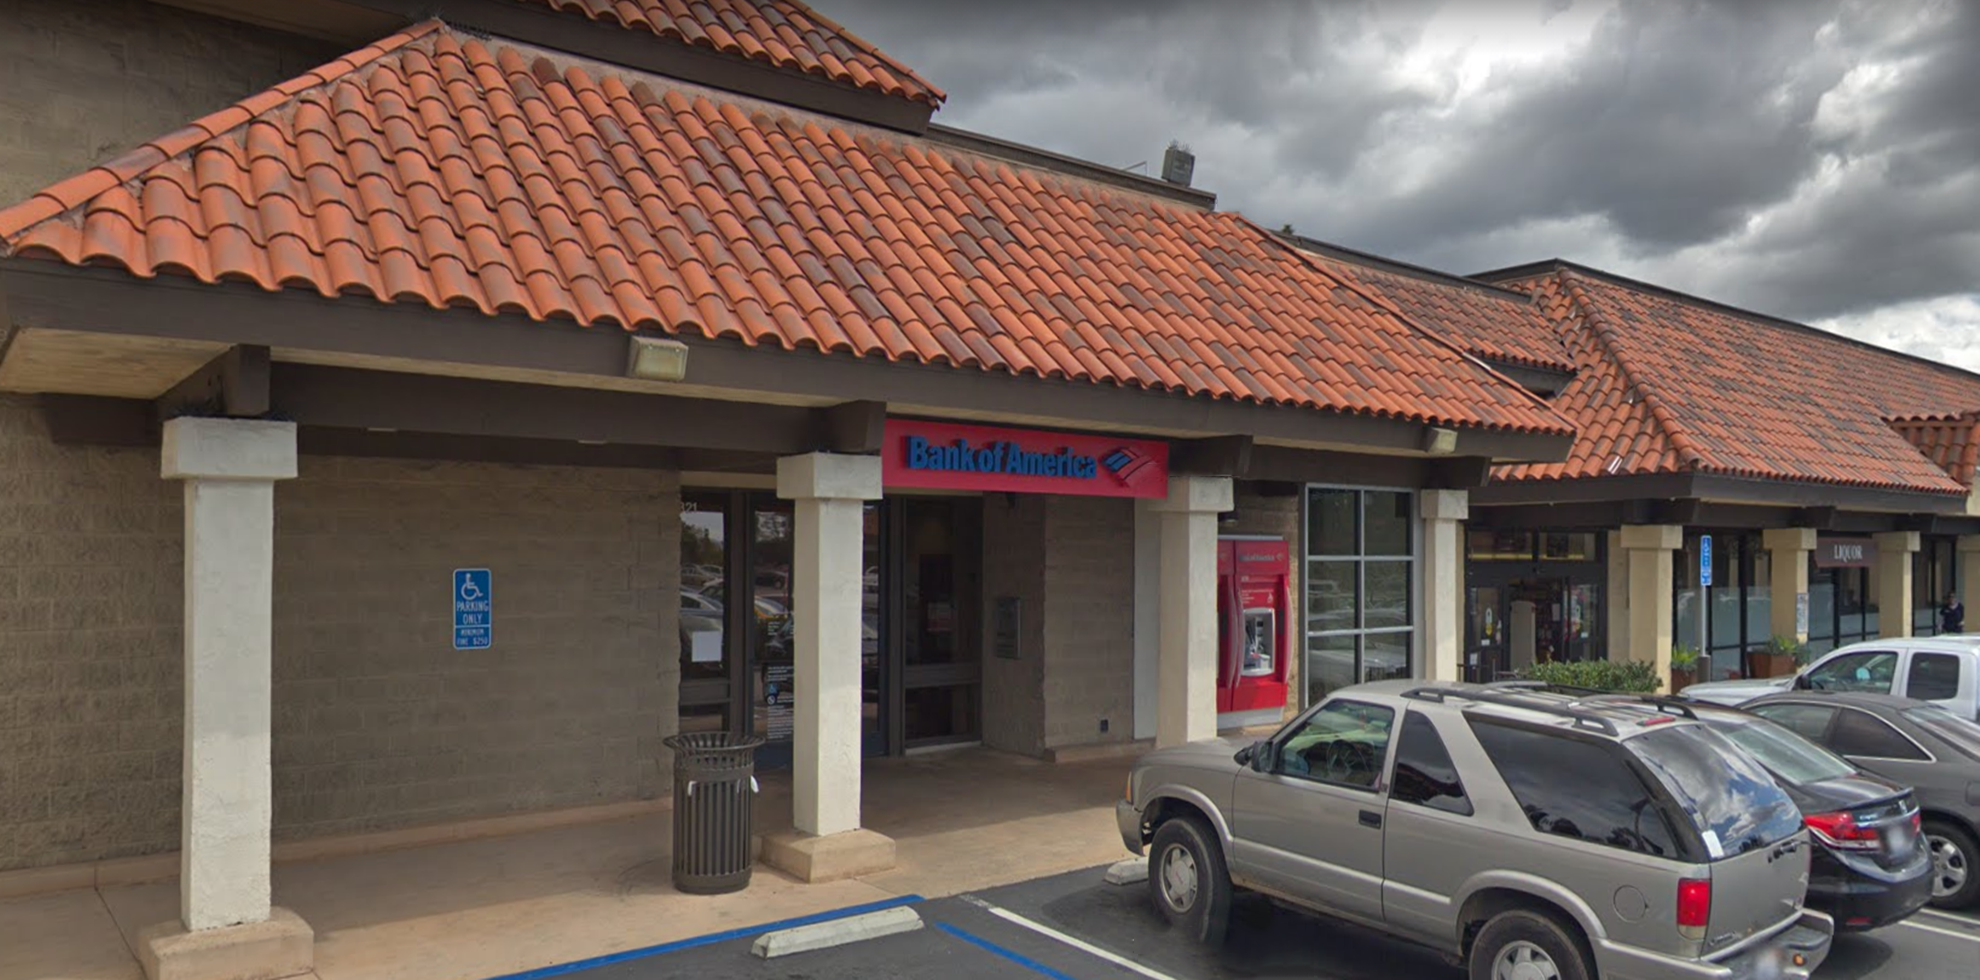 Bank of America financial center with drive-thru ATM   26821 Trabuco Rd, Mission Viejo, CA 92691